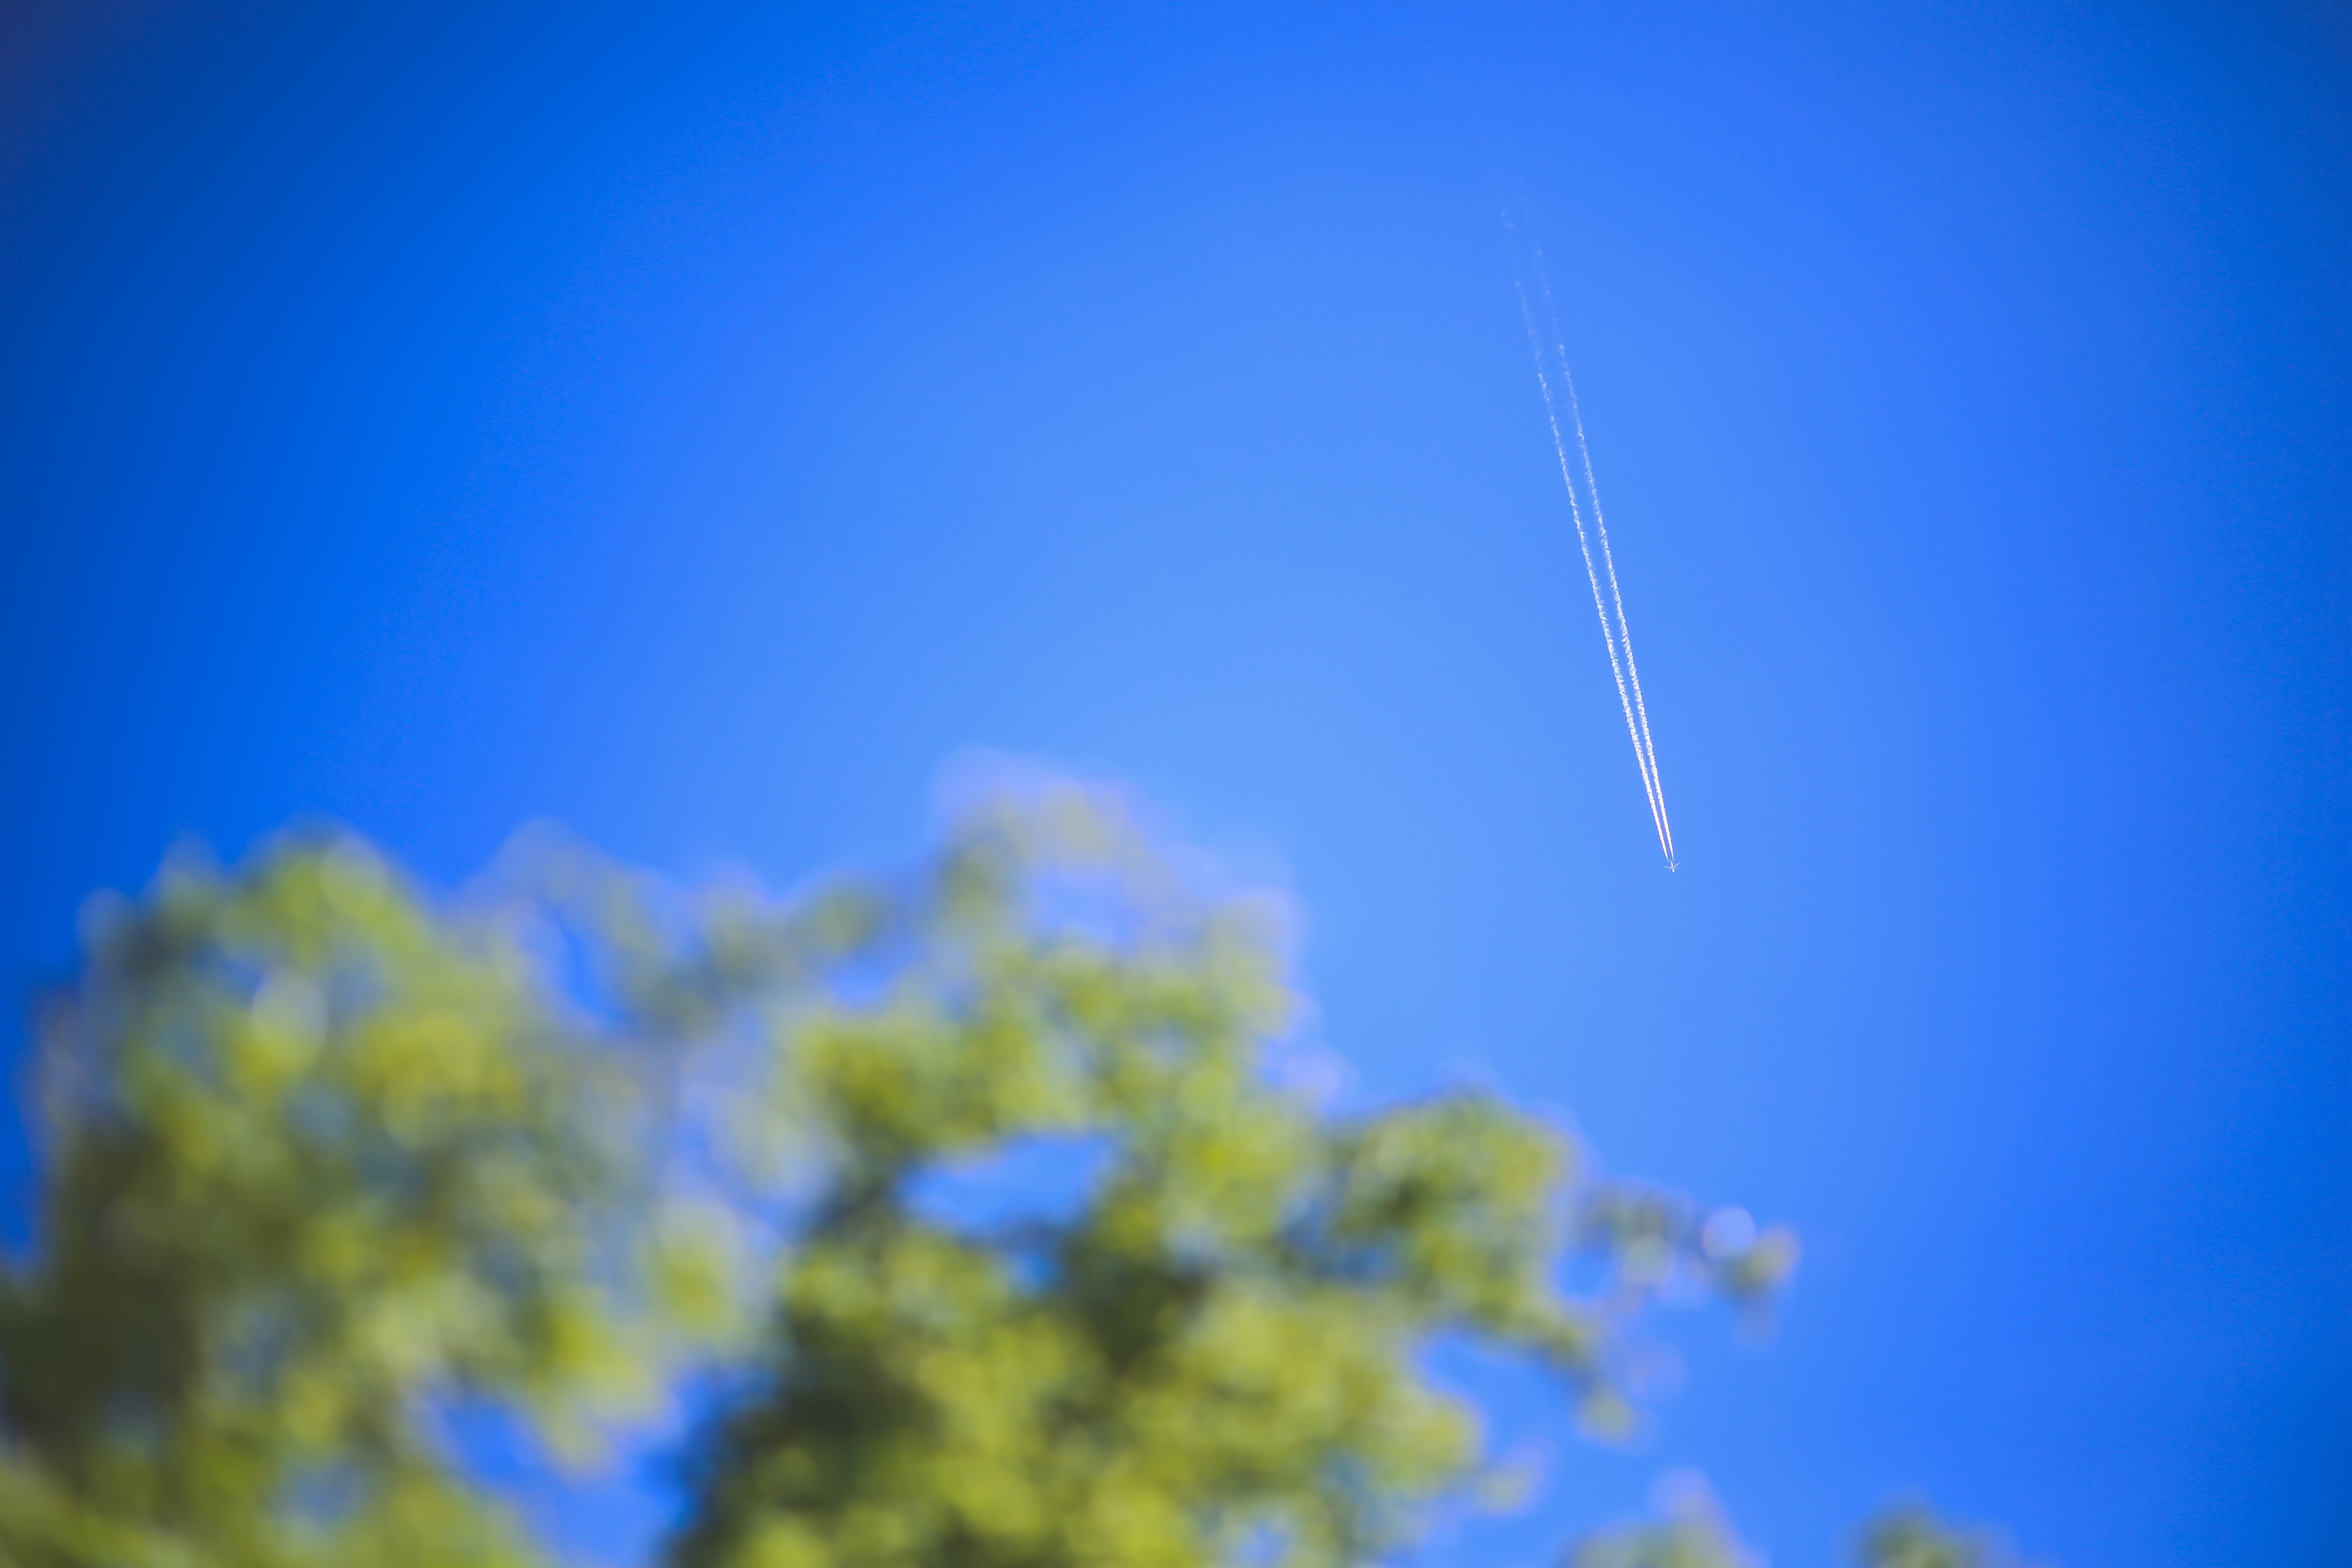 Passenger jet flying high in clear blue sky, leaving long white trail